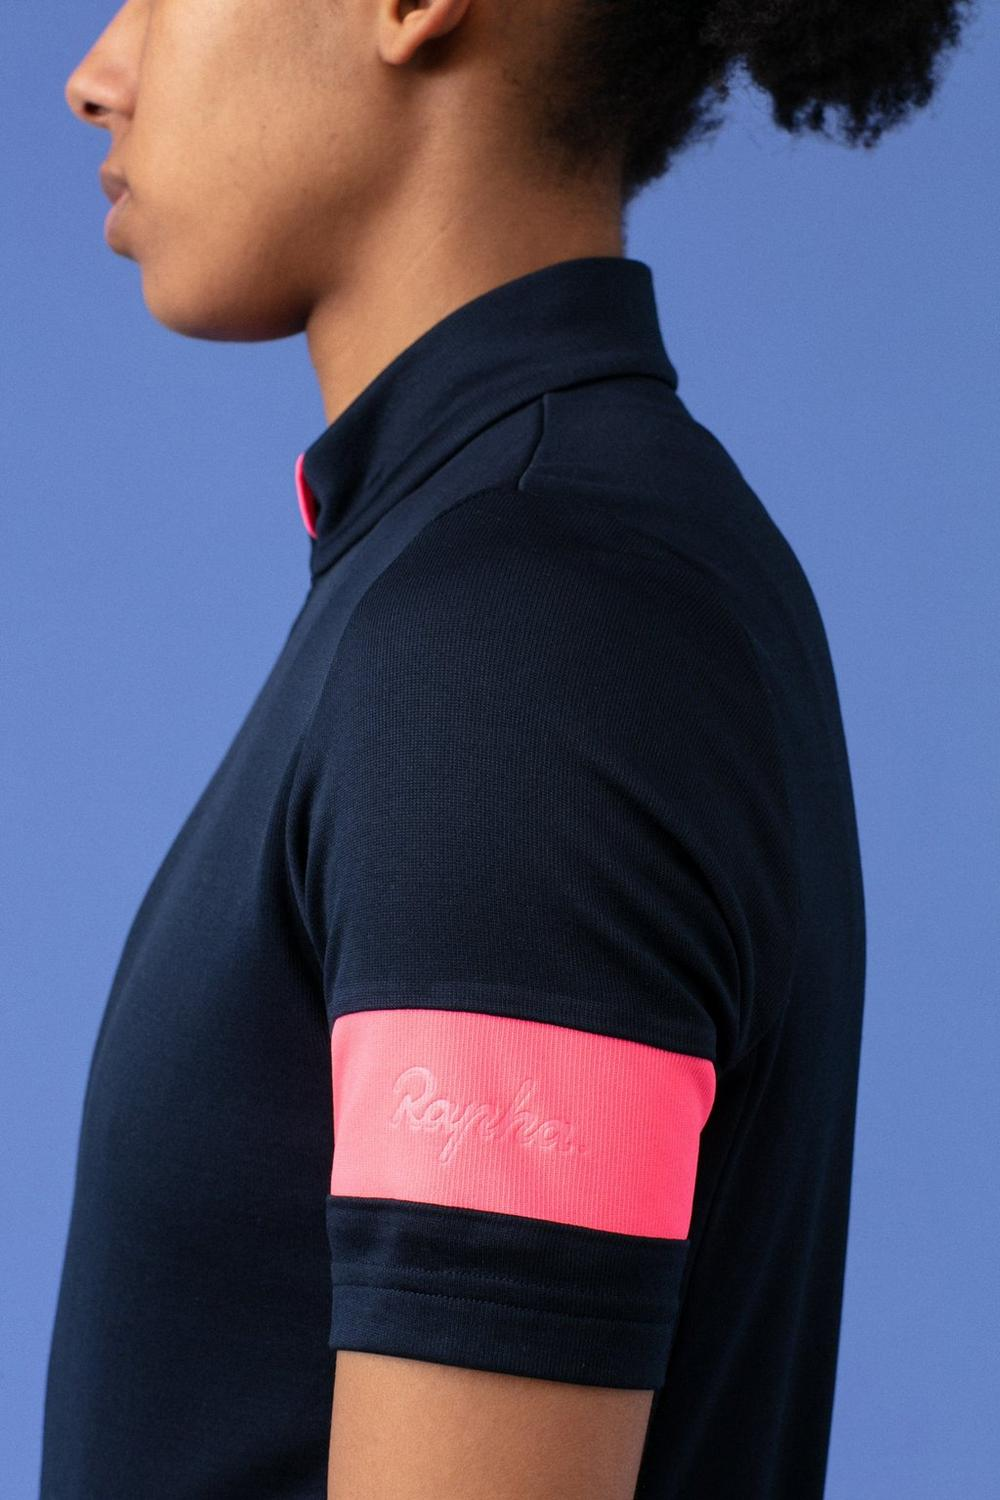 Rapha Classic Collection womens cycling jerseys merino cycling jersey